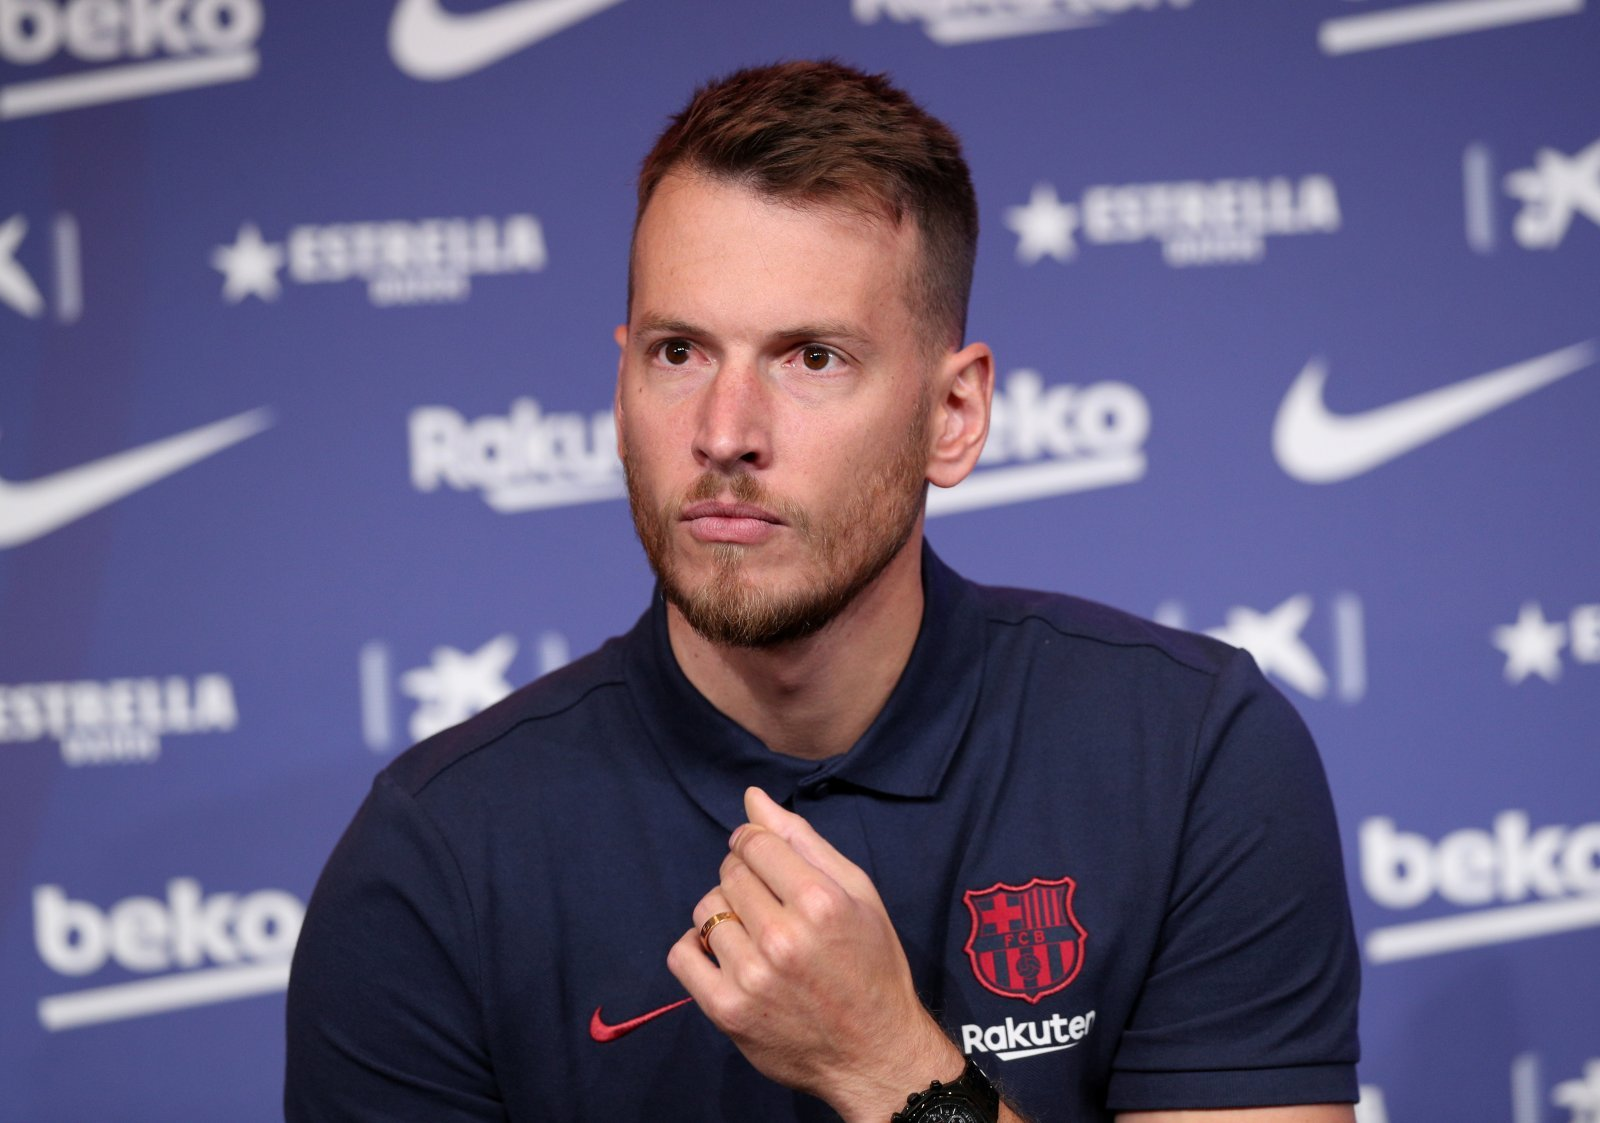 Barcelona: Neto ruled out for 6-8 weeks